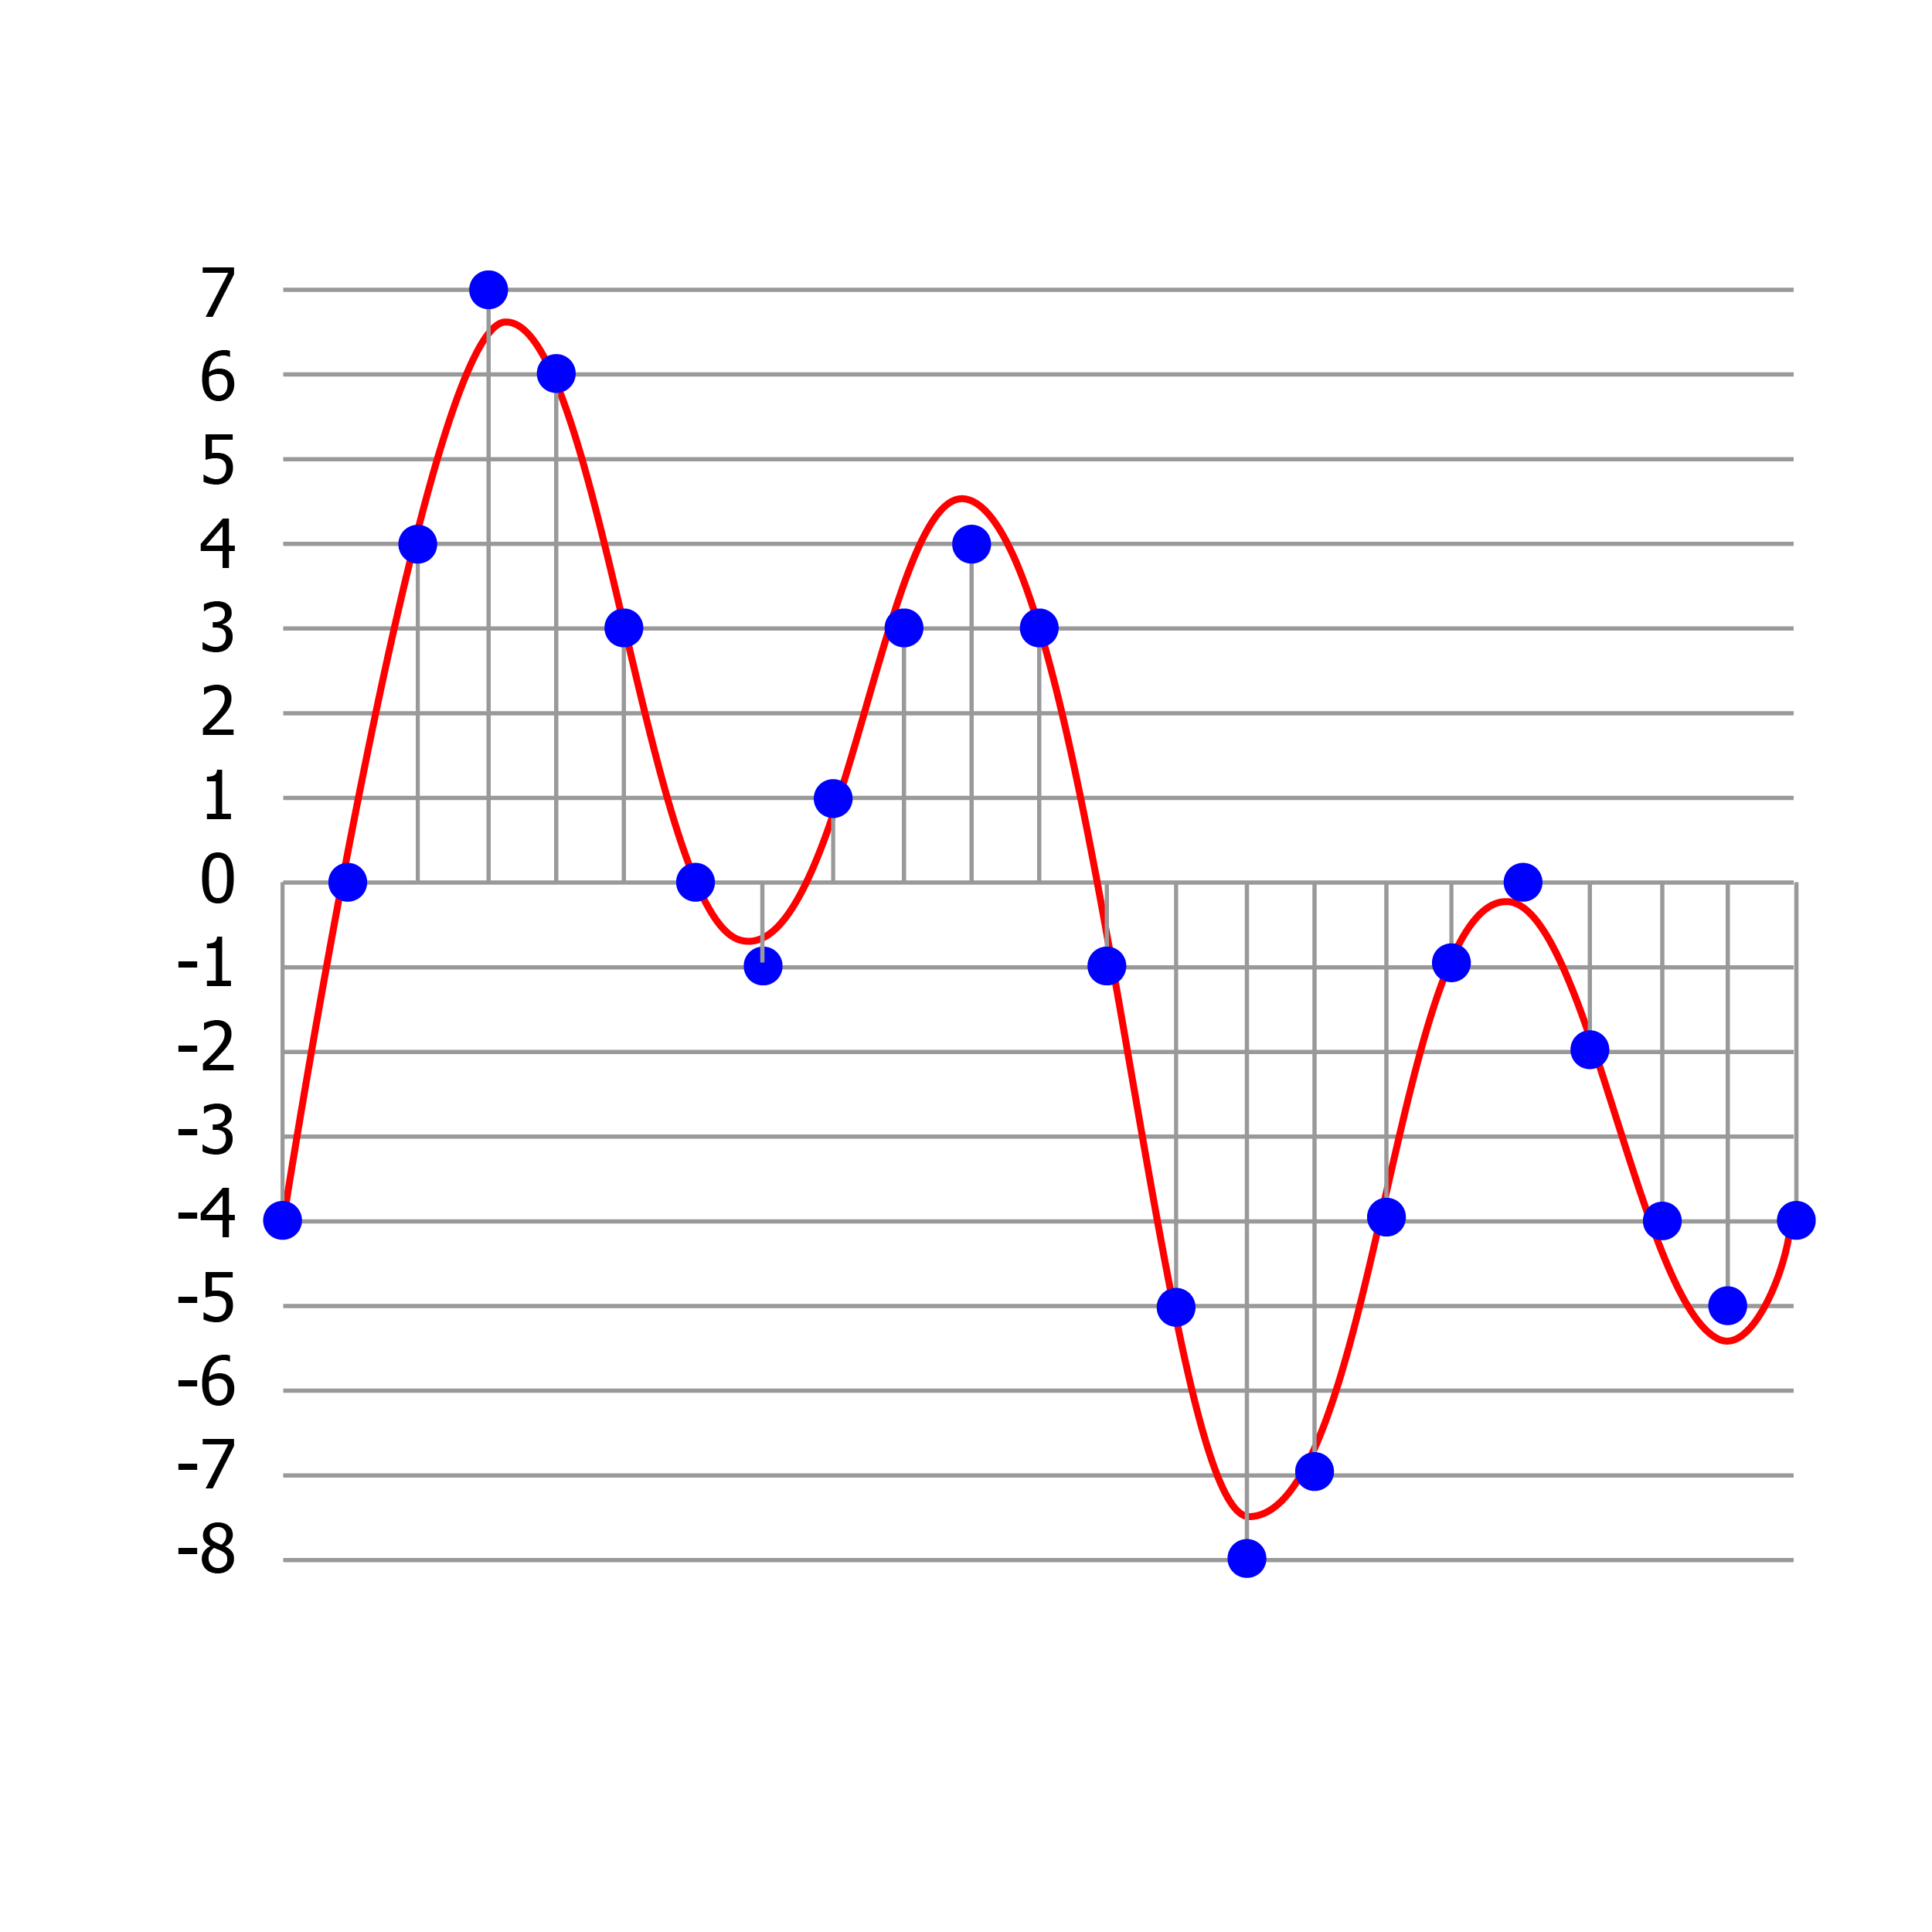 Quantized Waveform